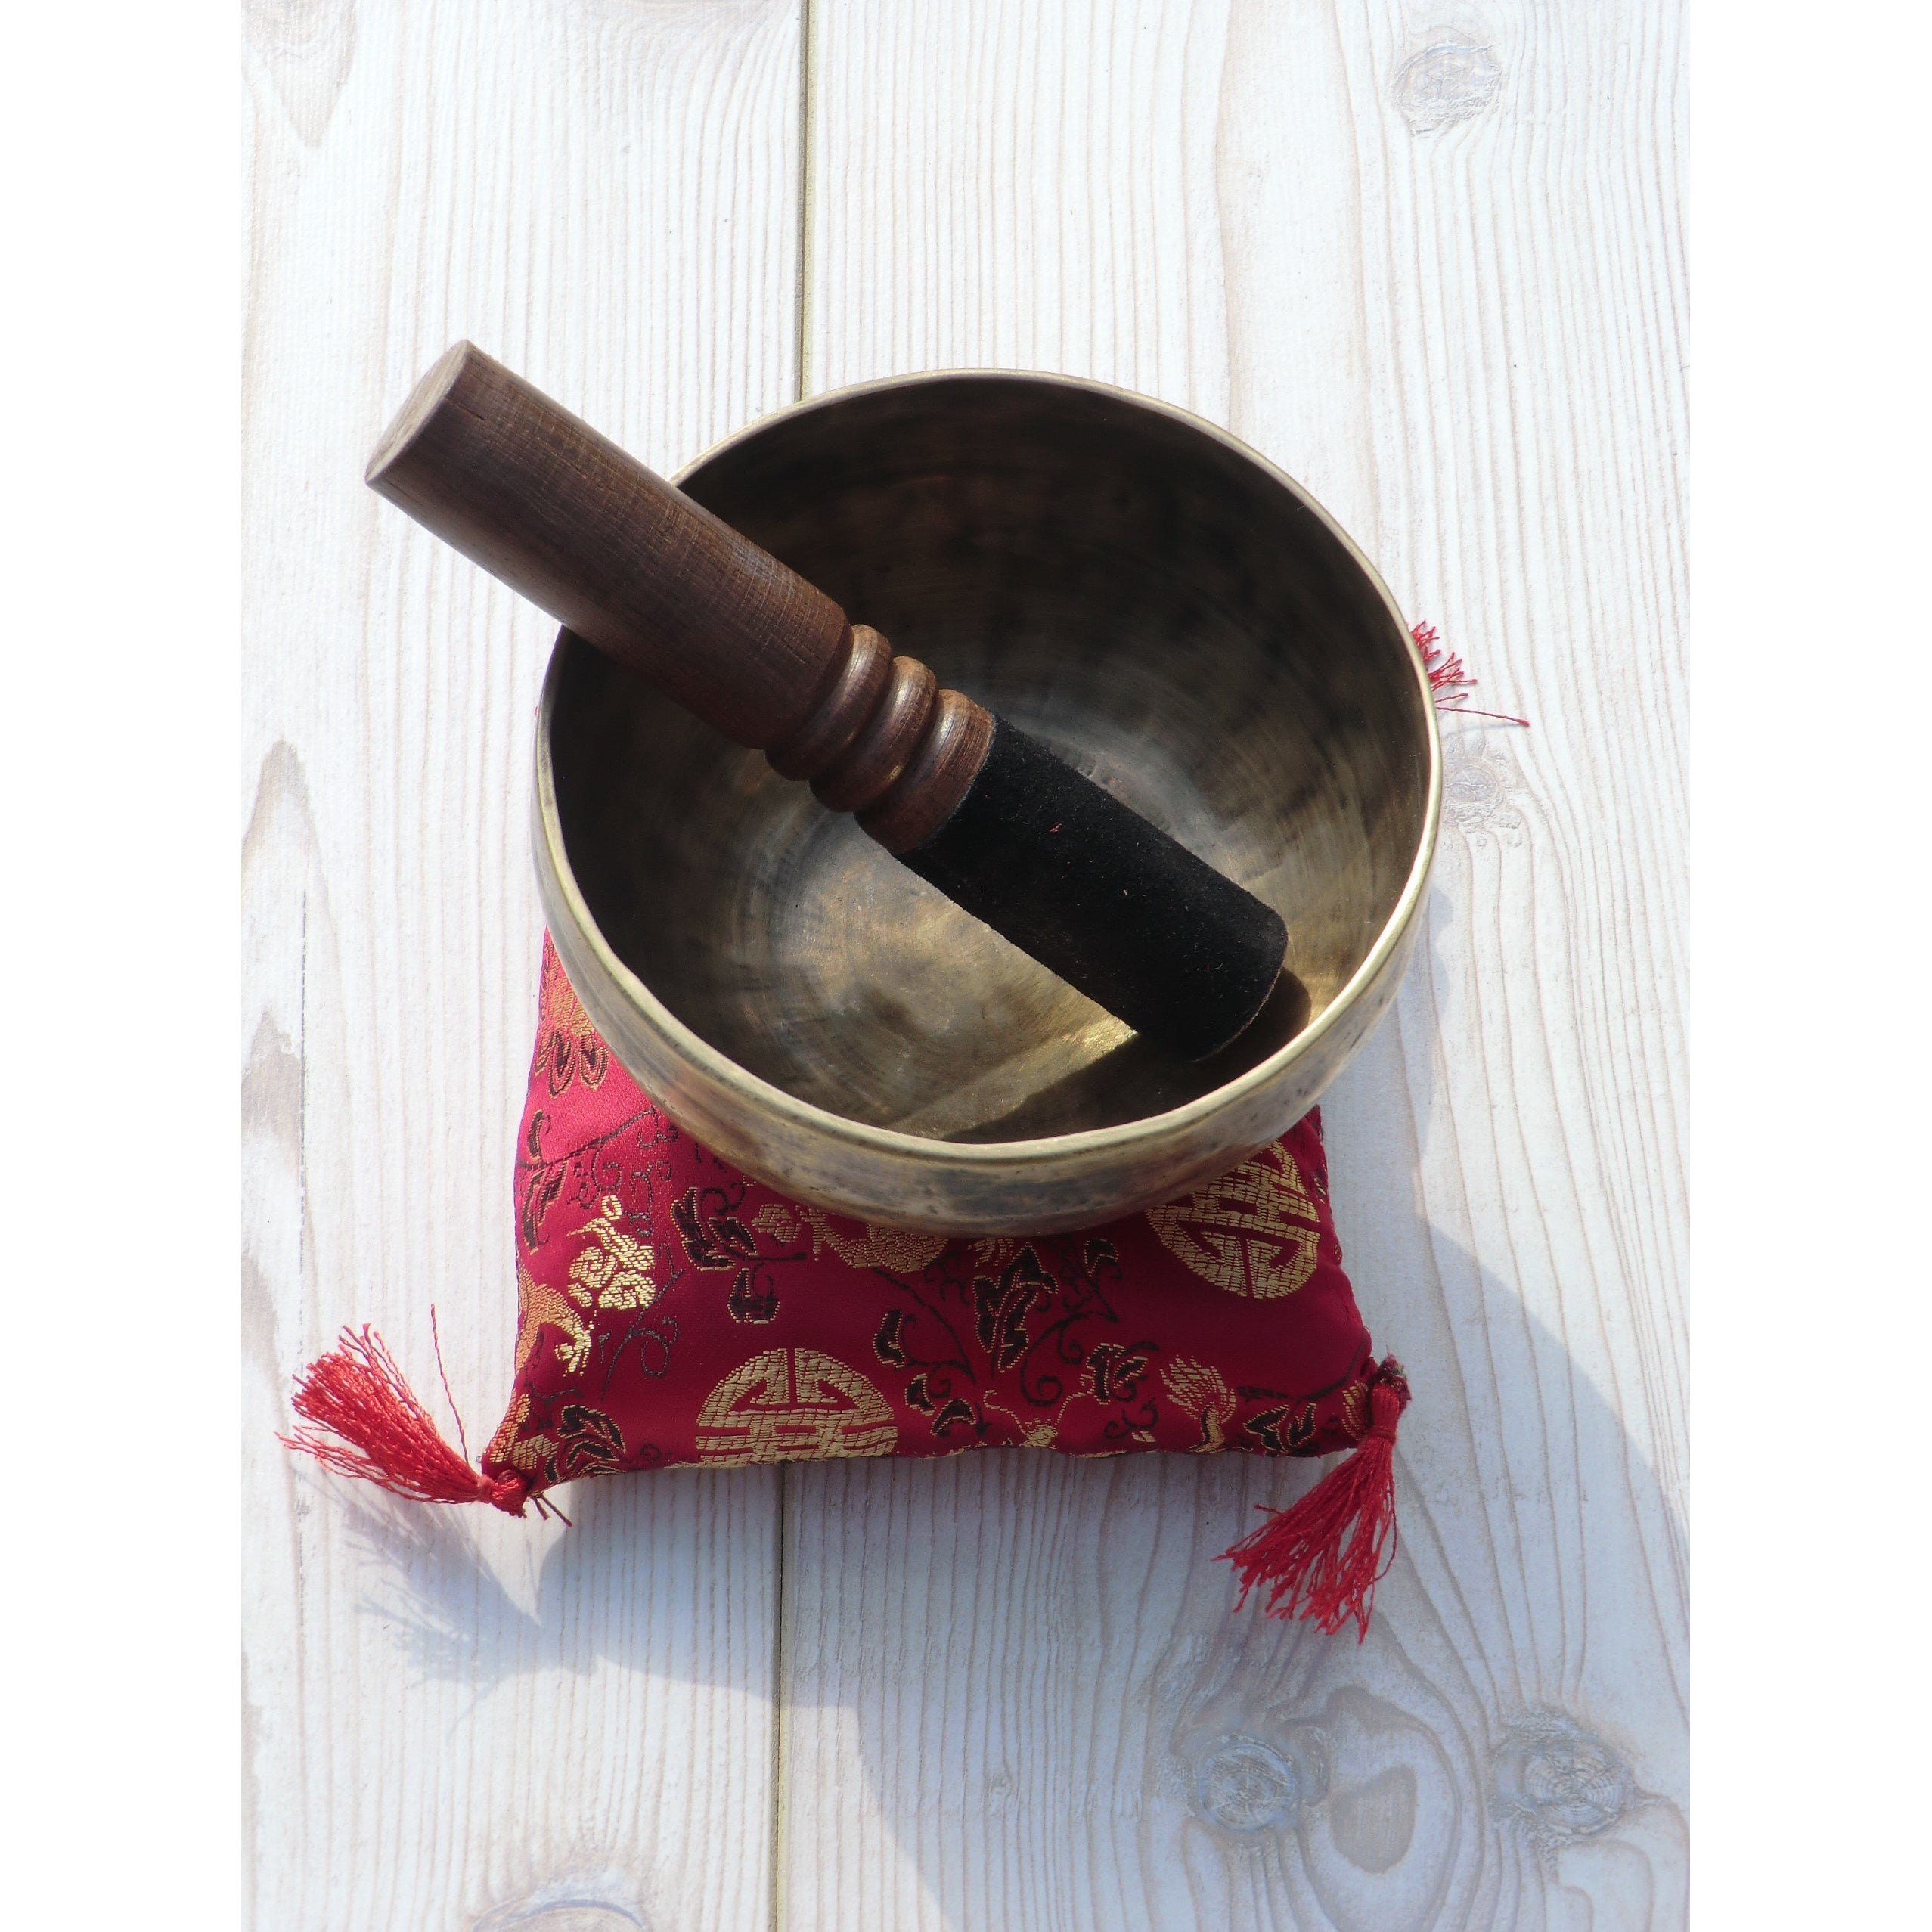 Singing Bowl 550g - Matico